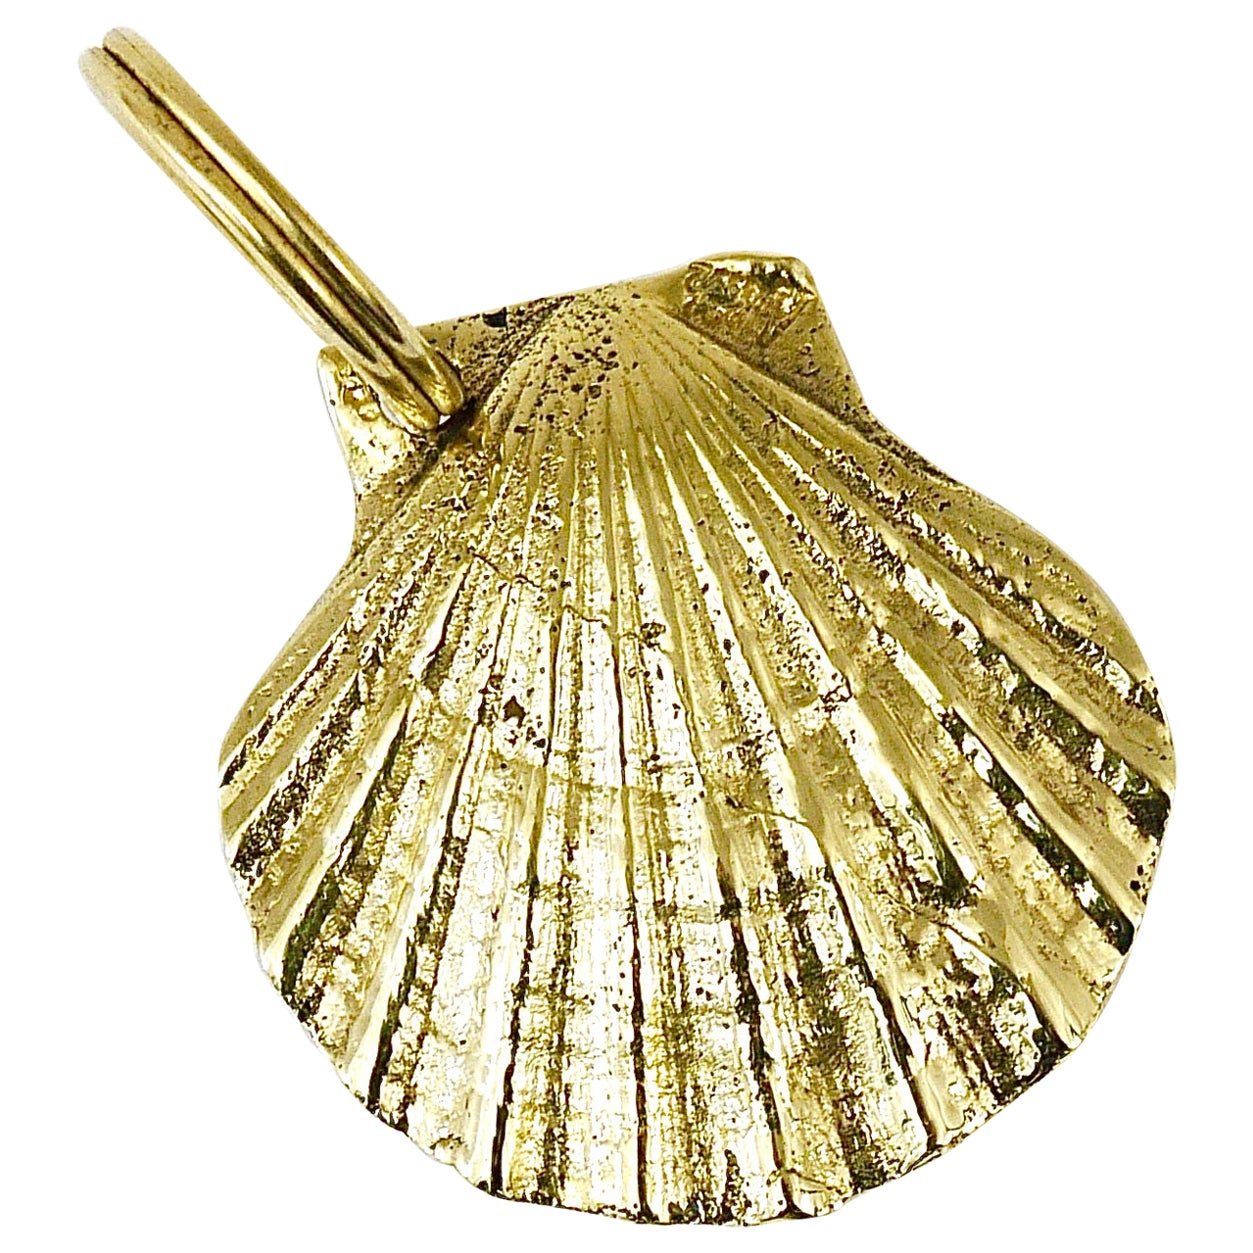 Carl Auböck Handcrafted Midcentury Brass Shell Figurine Key Ring Chain Holder